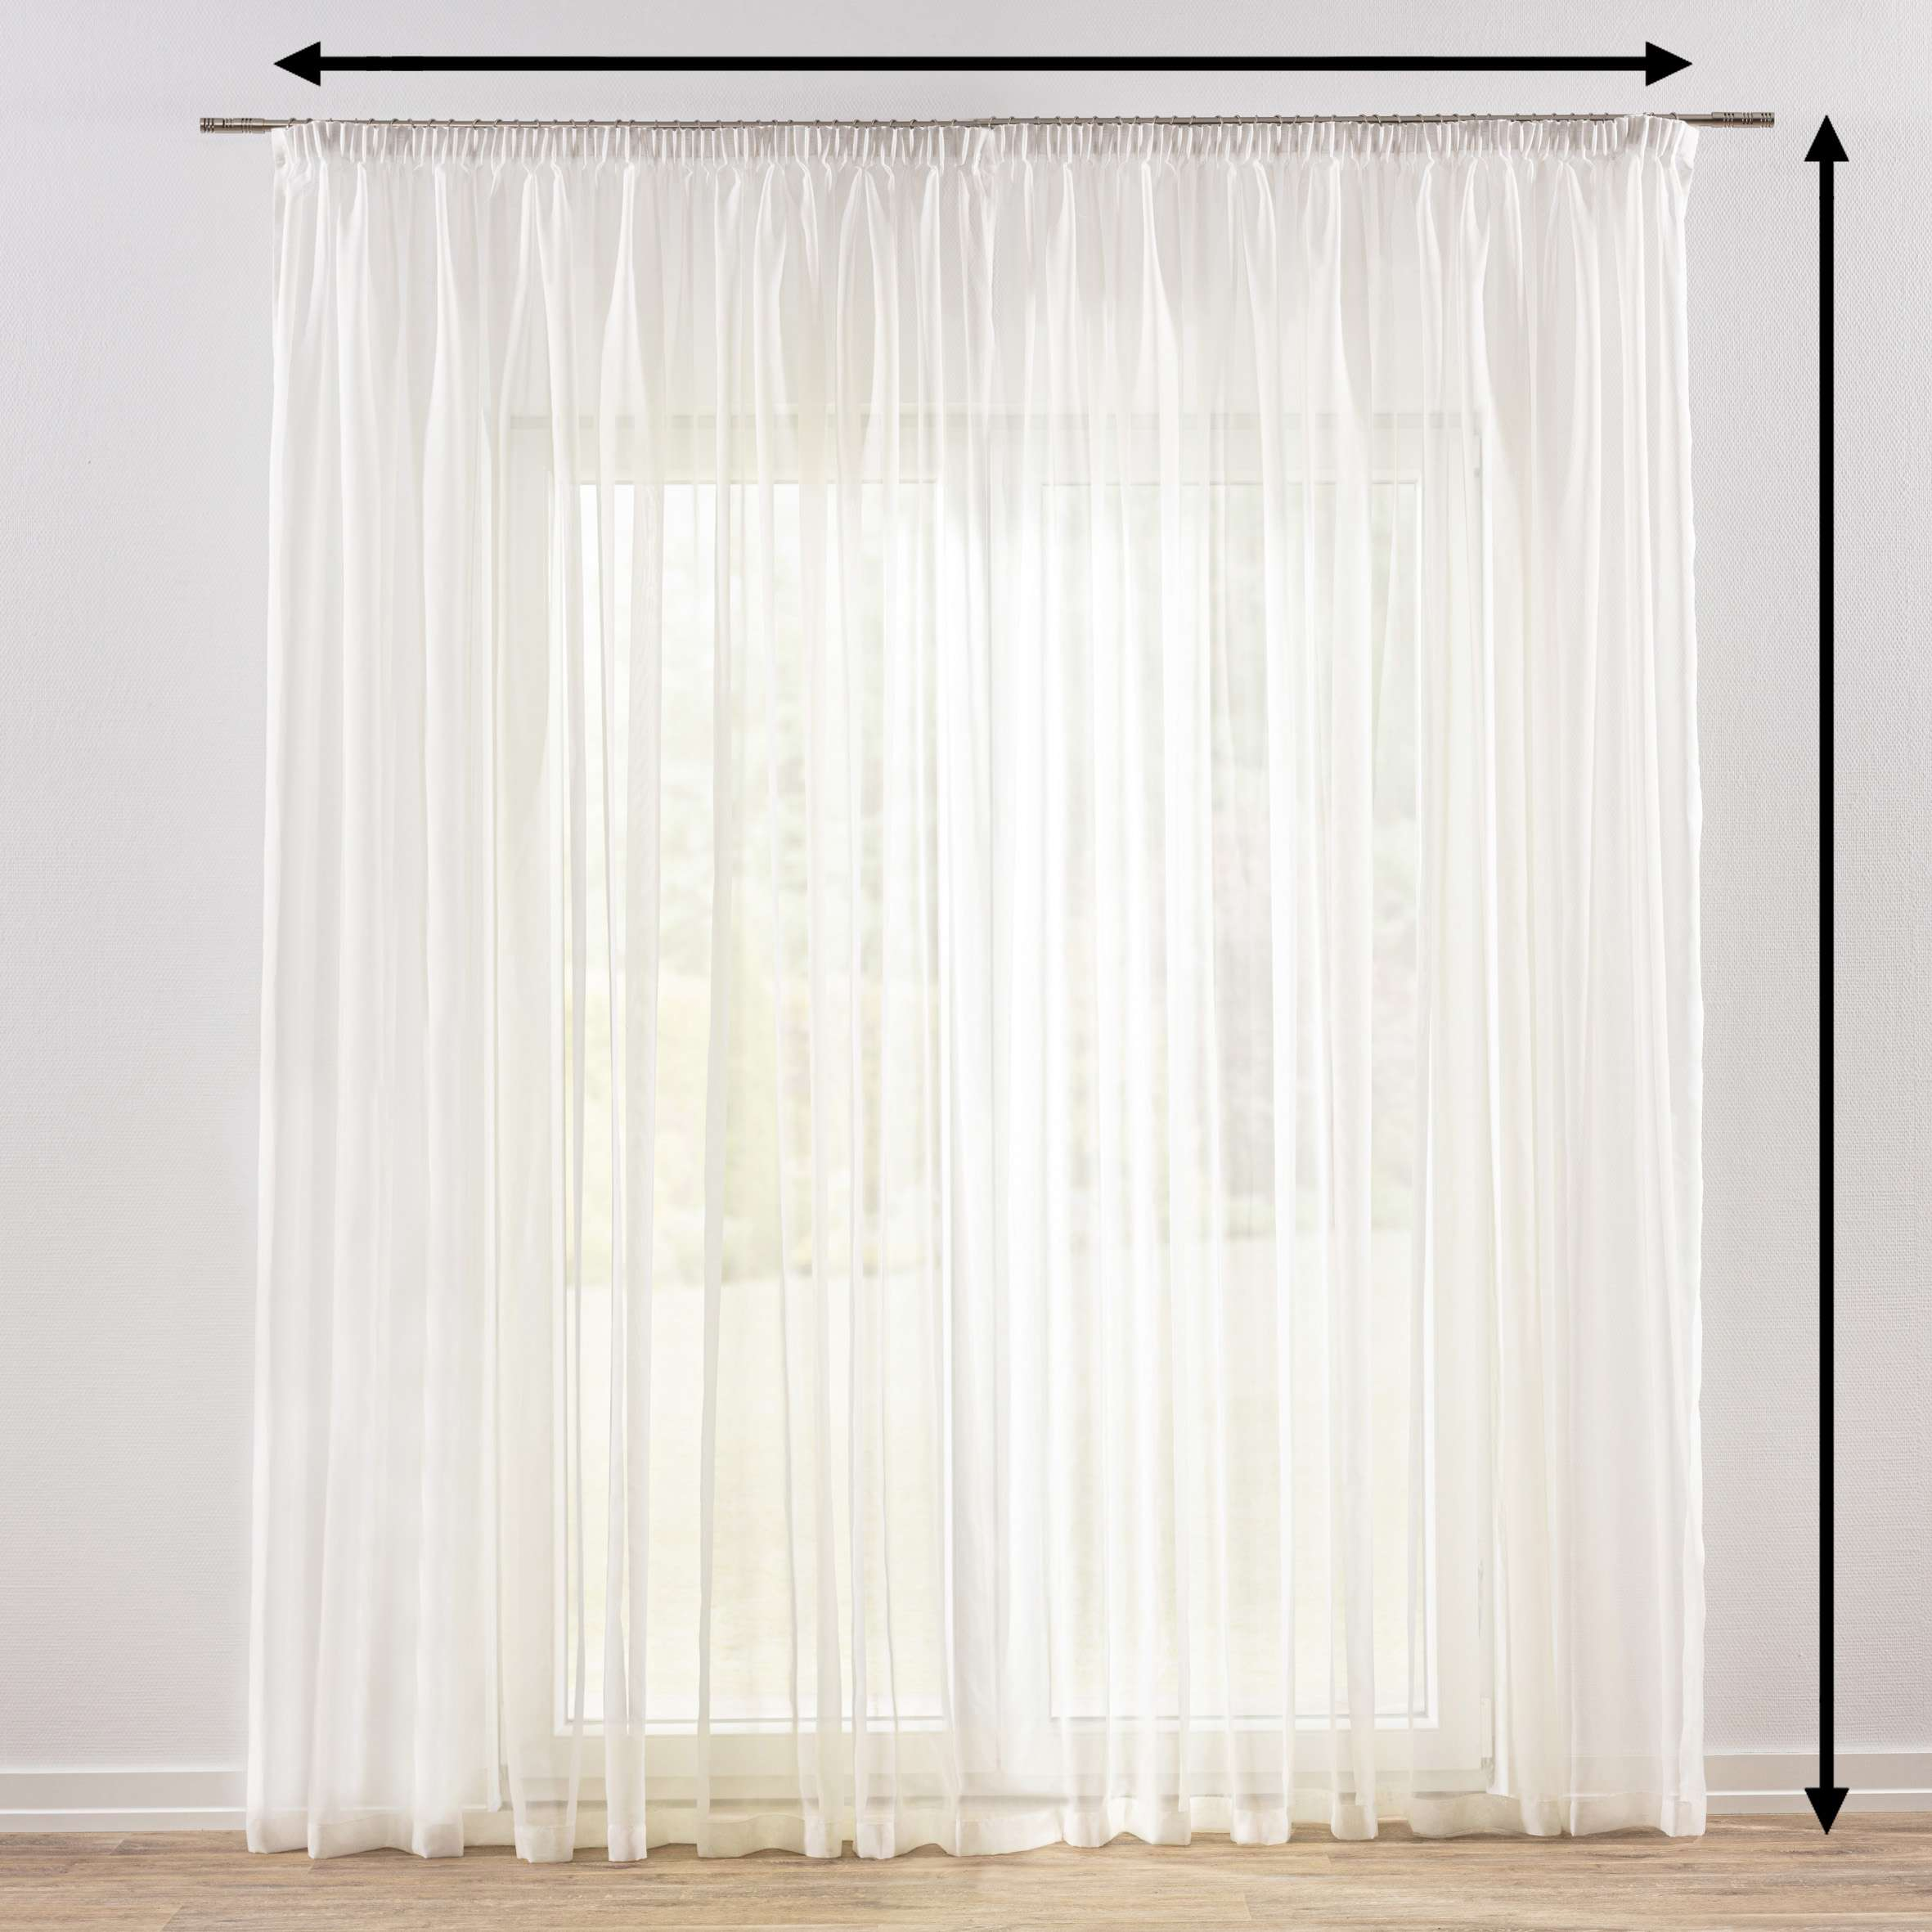 Pencil pleat voile/net curtain in collection Voile, fabric: 900-01